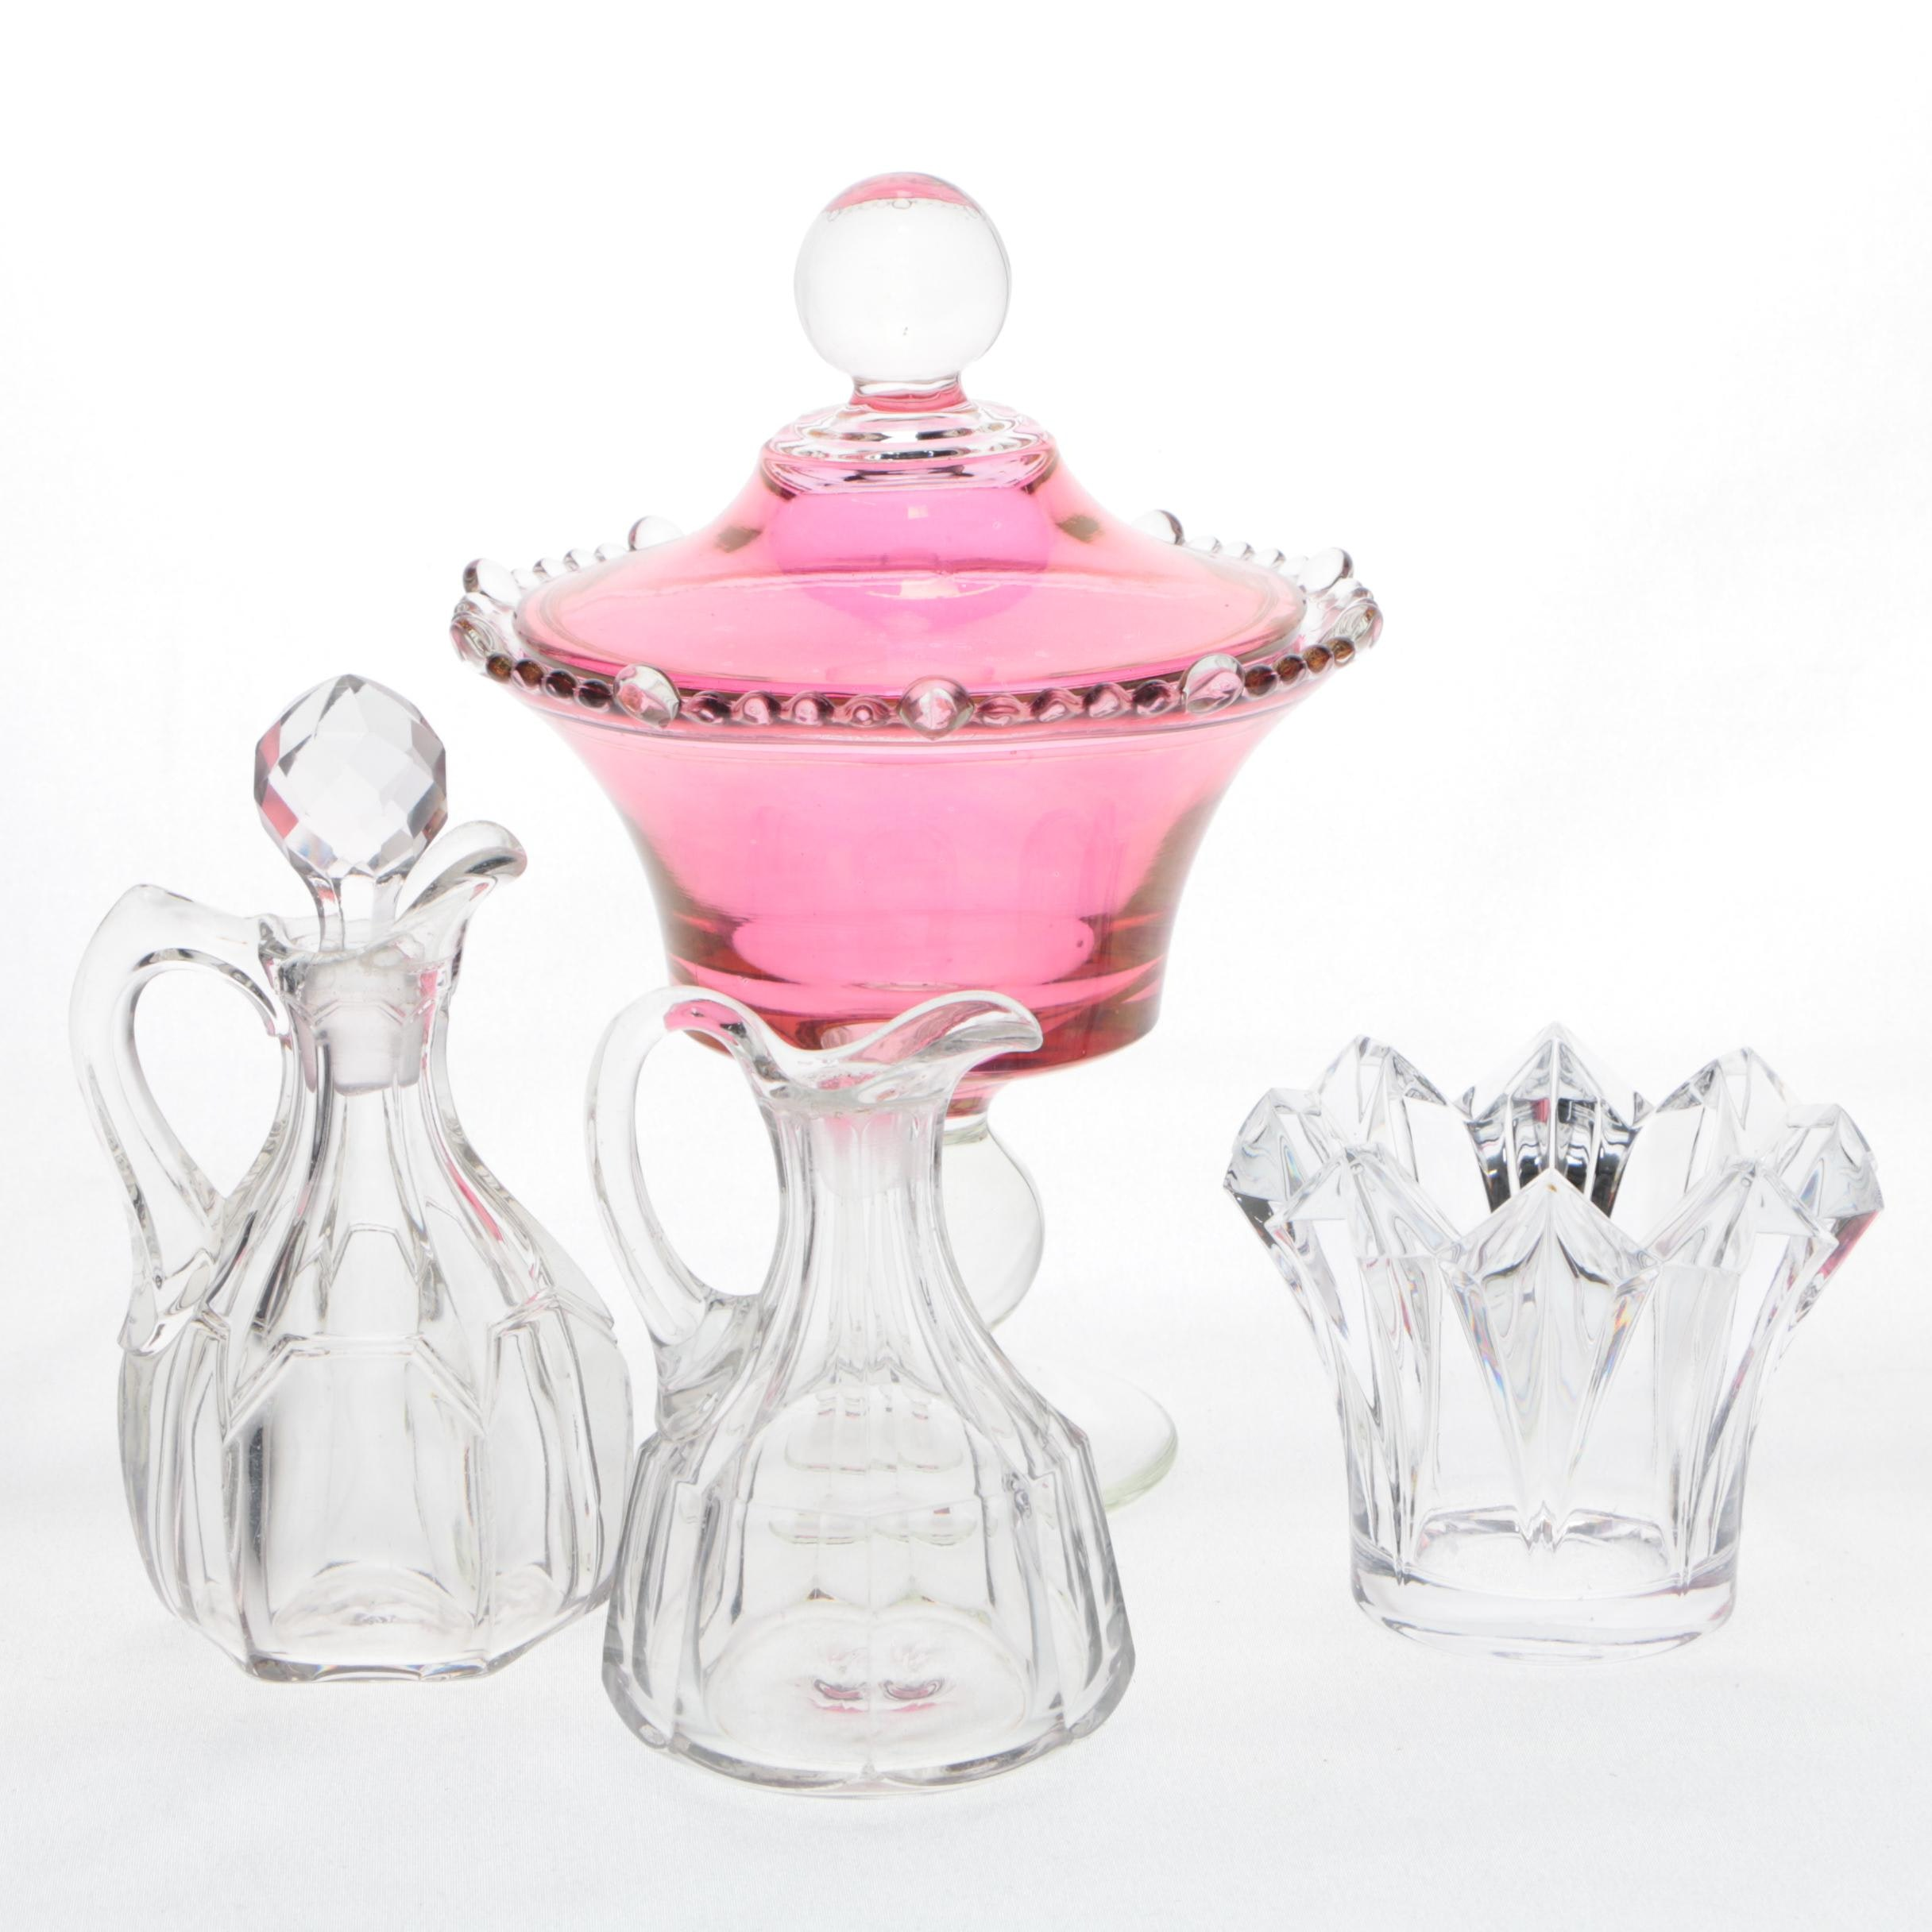 Serveware Including Crystal Candy Dish